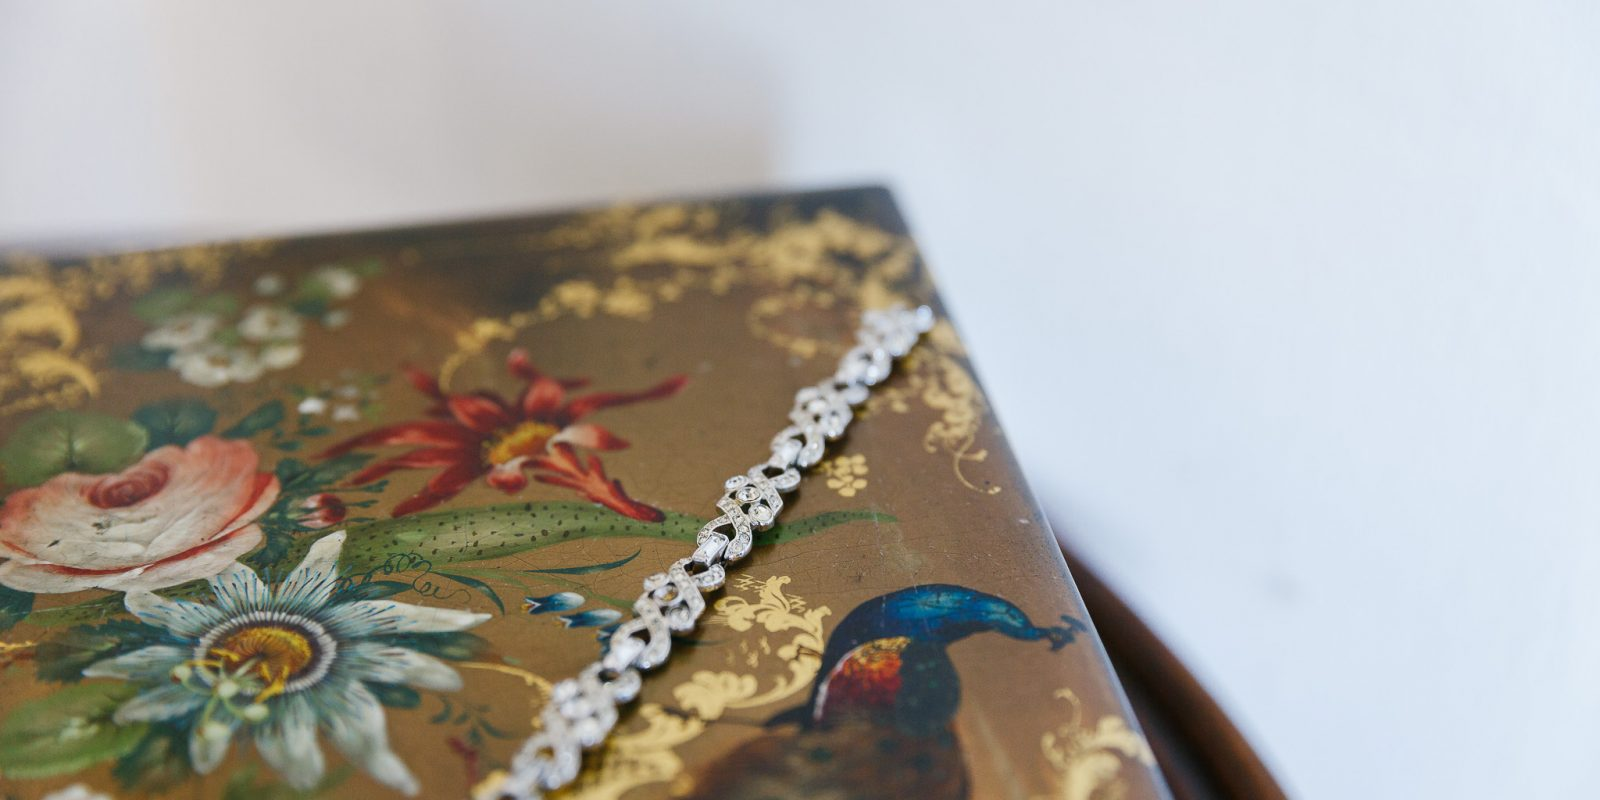 Jewellery on a vintage box at Lyde Court wedding venue